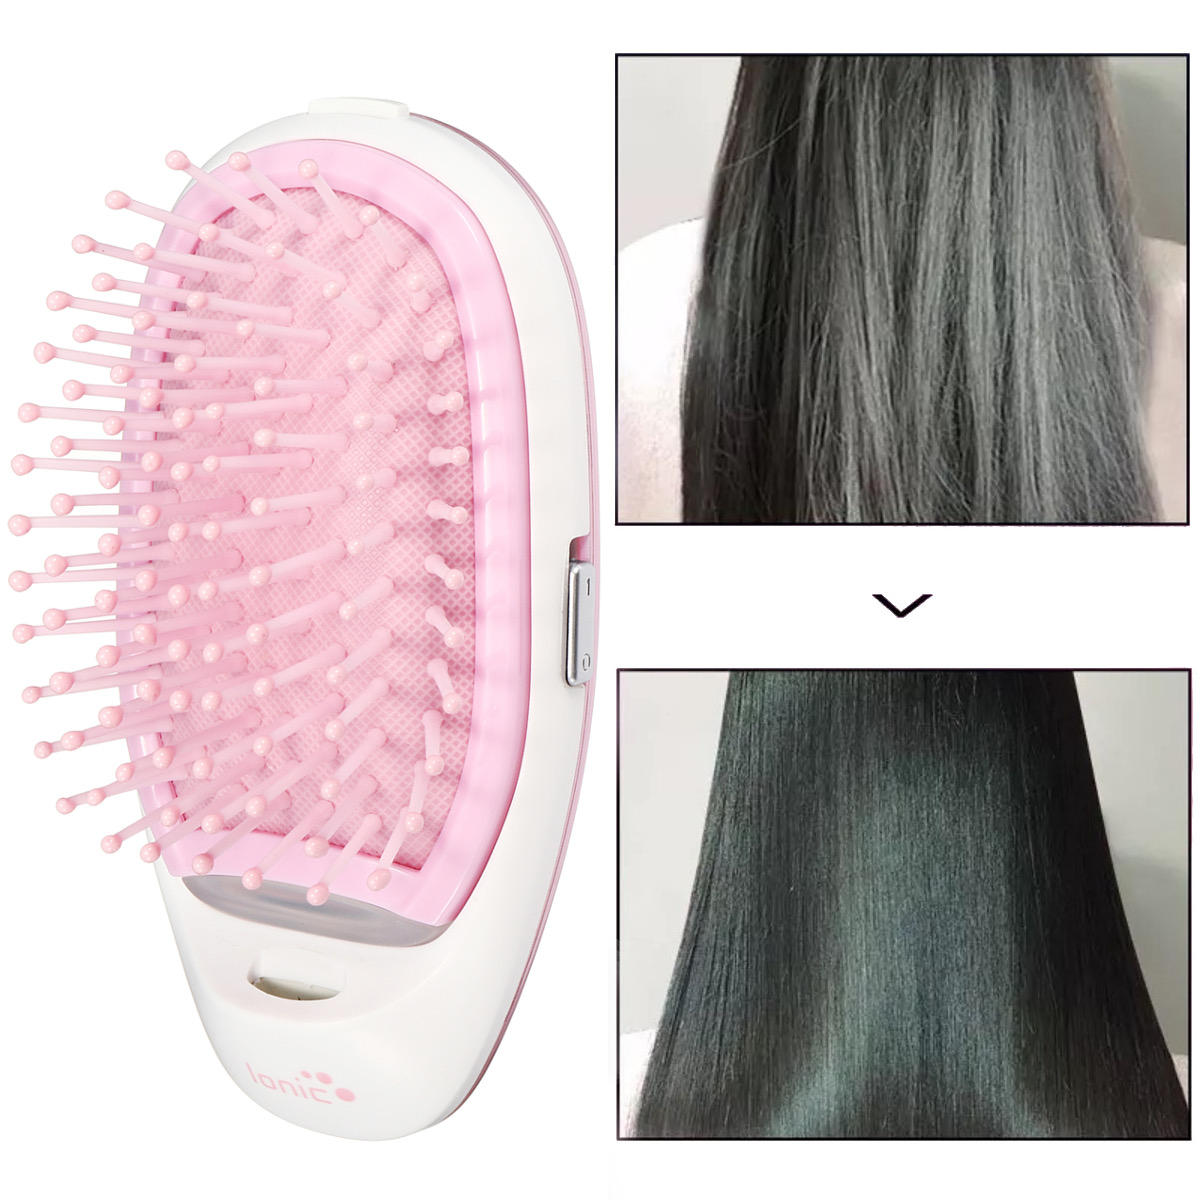 Portable Electric Ionic Hairbrush Takeout Mini Massage 3D Hair Brush Comb Small